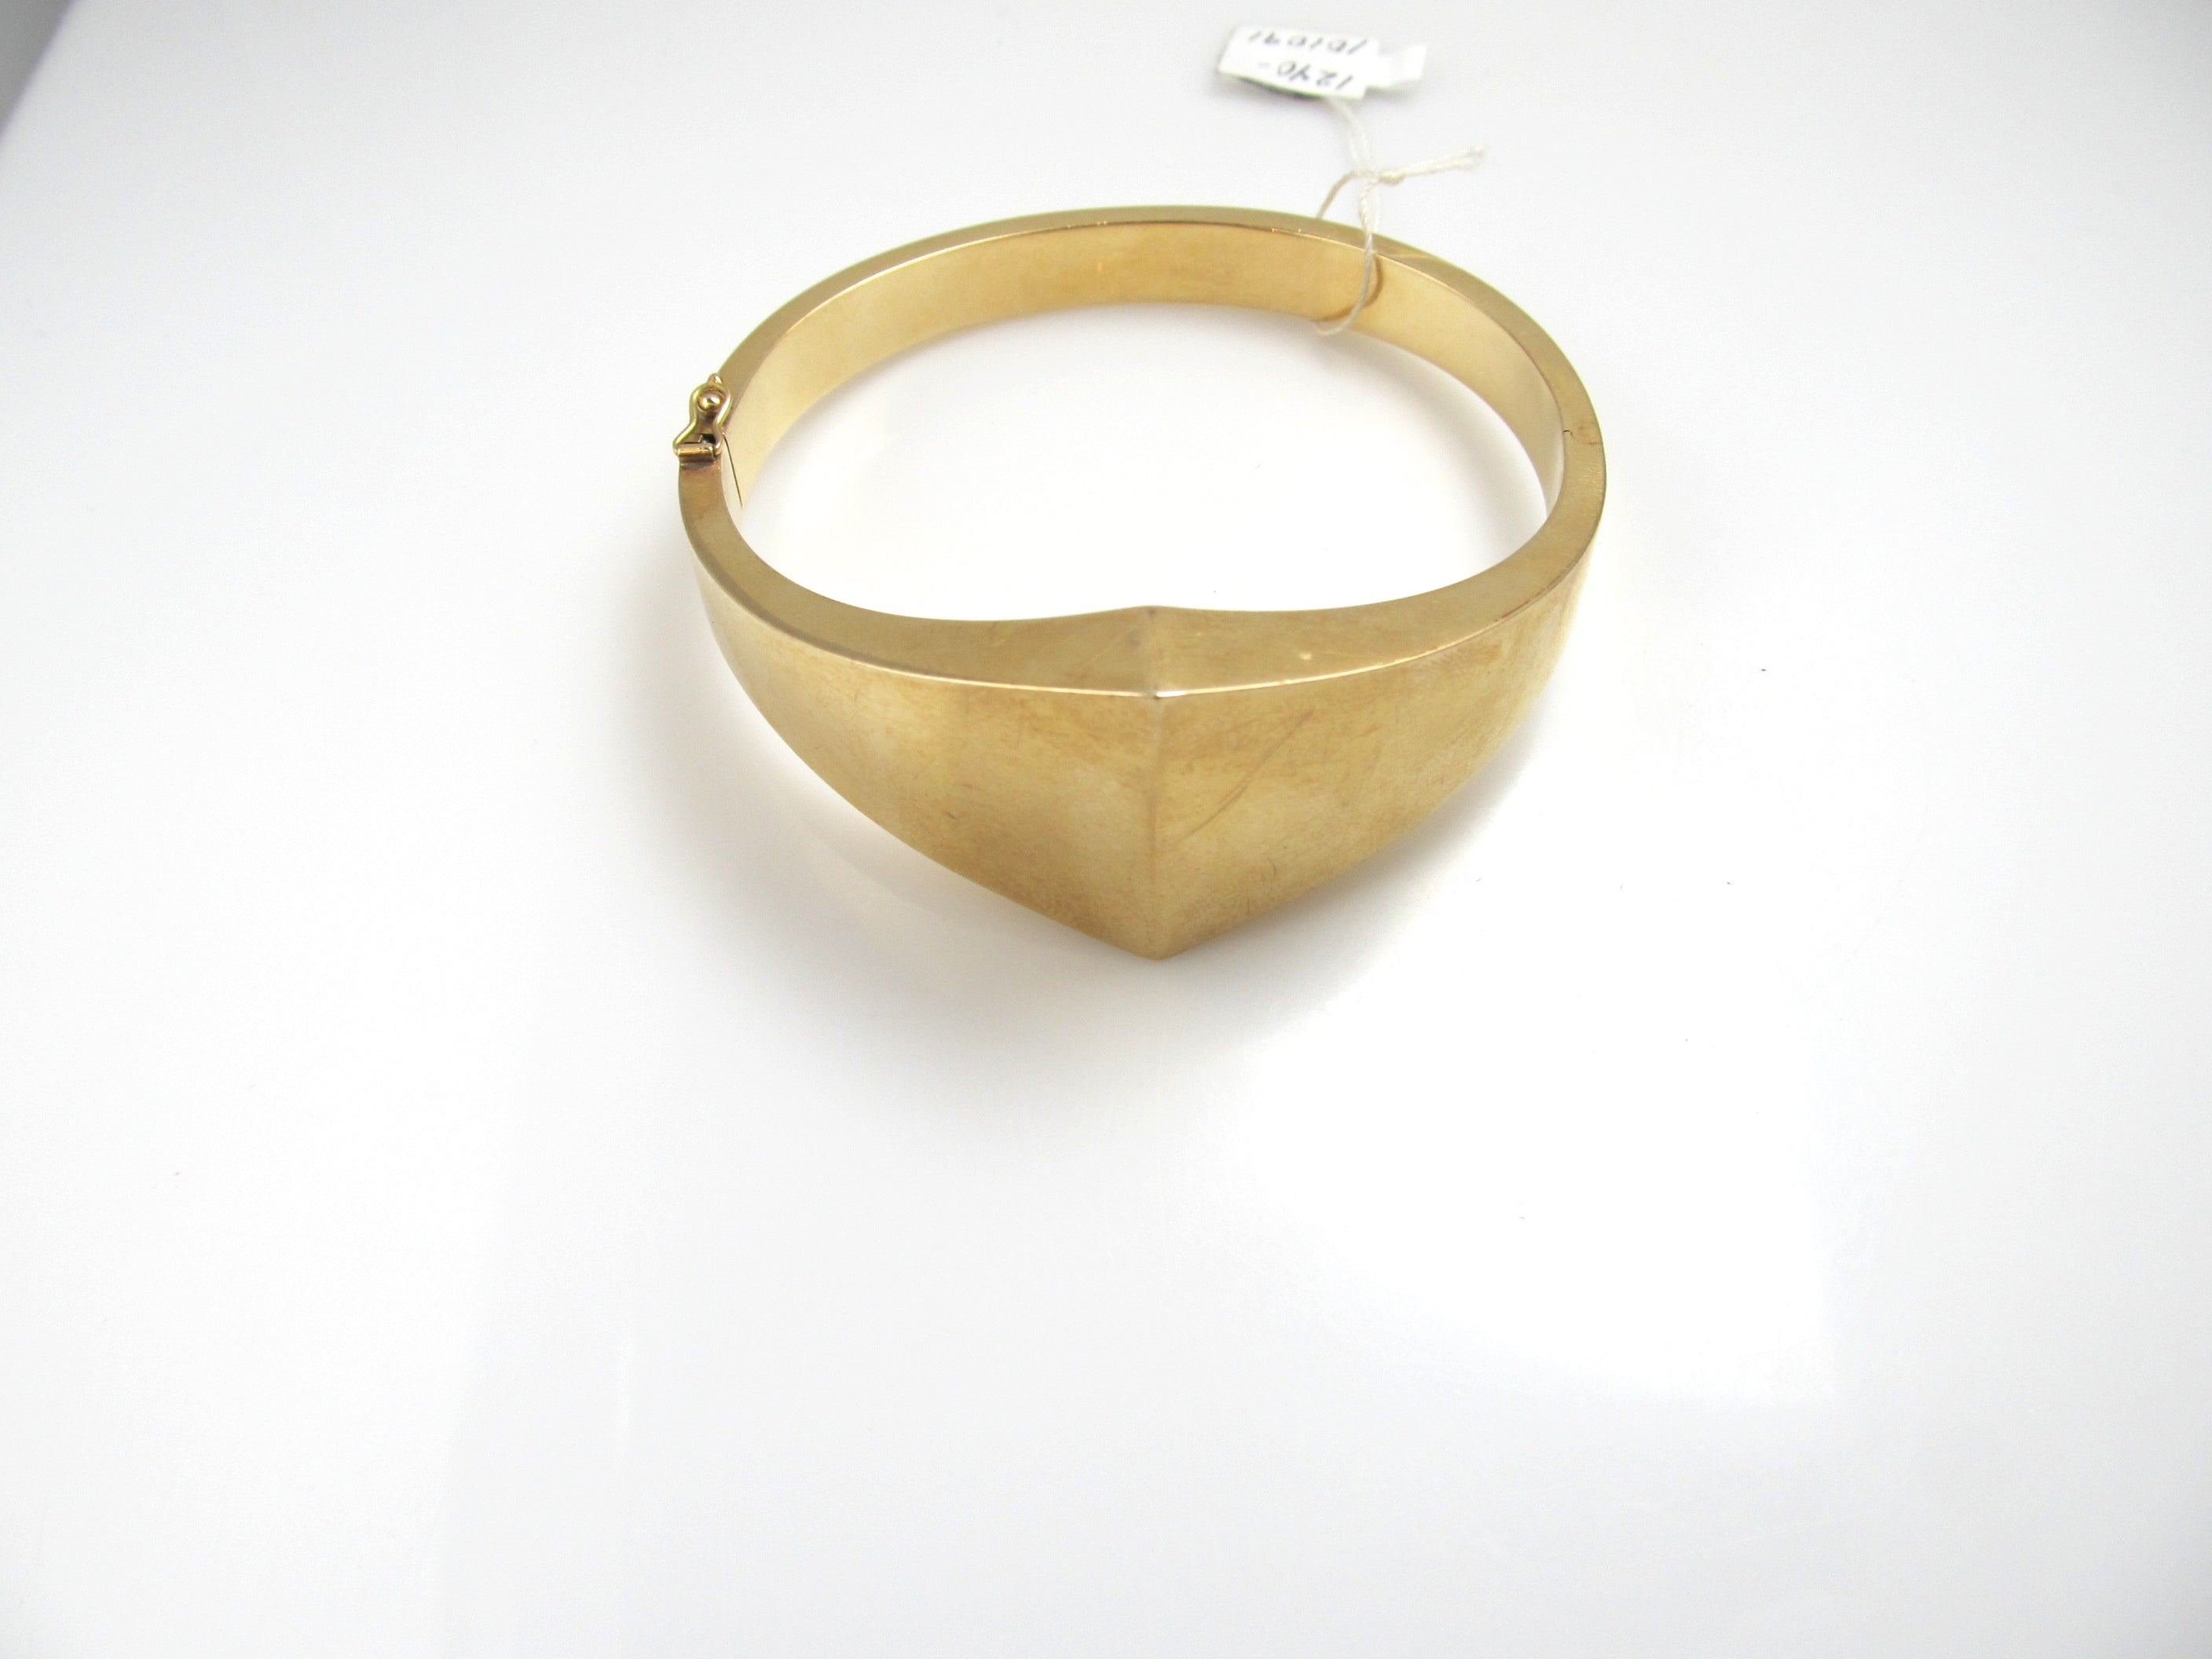 byzantine italy bangle bracelet toscanijewelry in gold bangles made com yellow